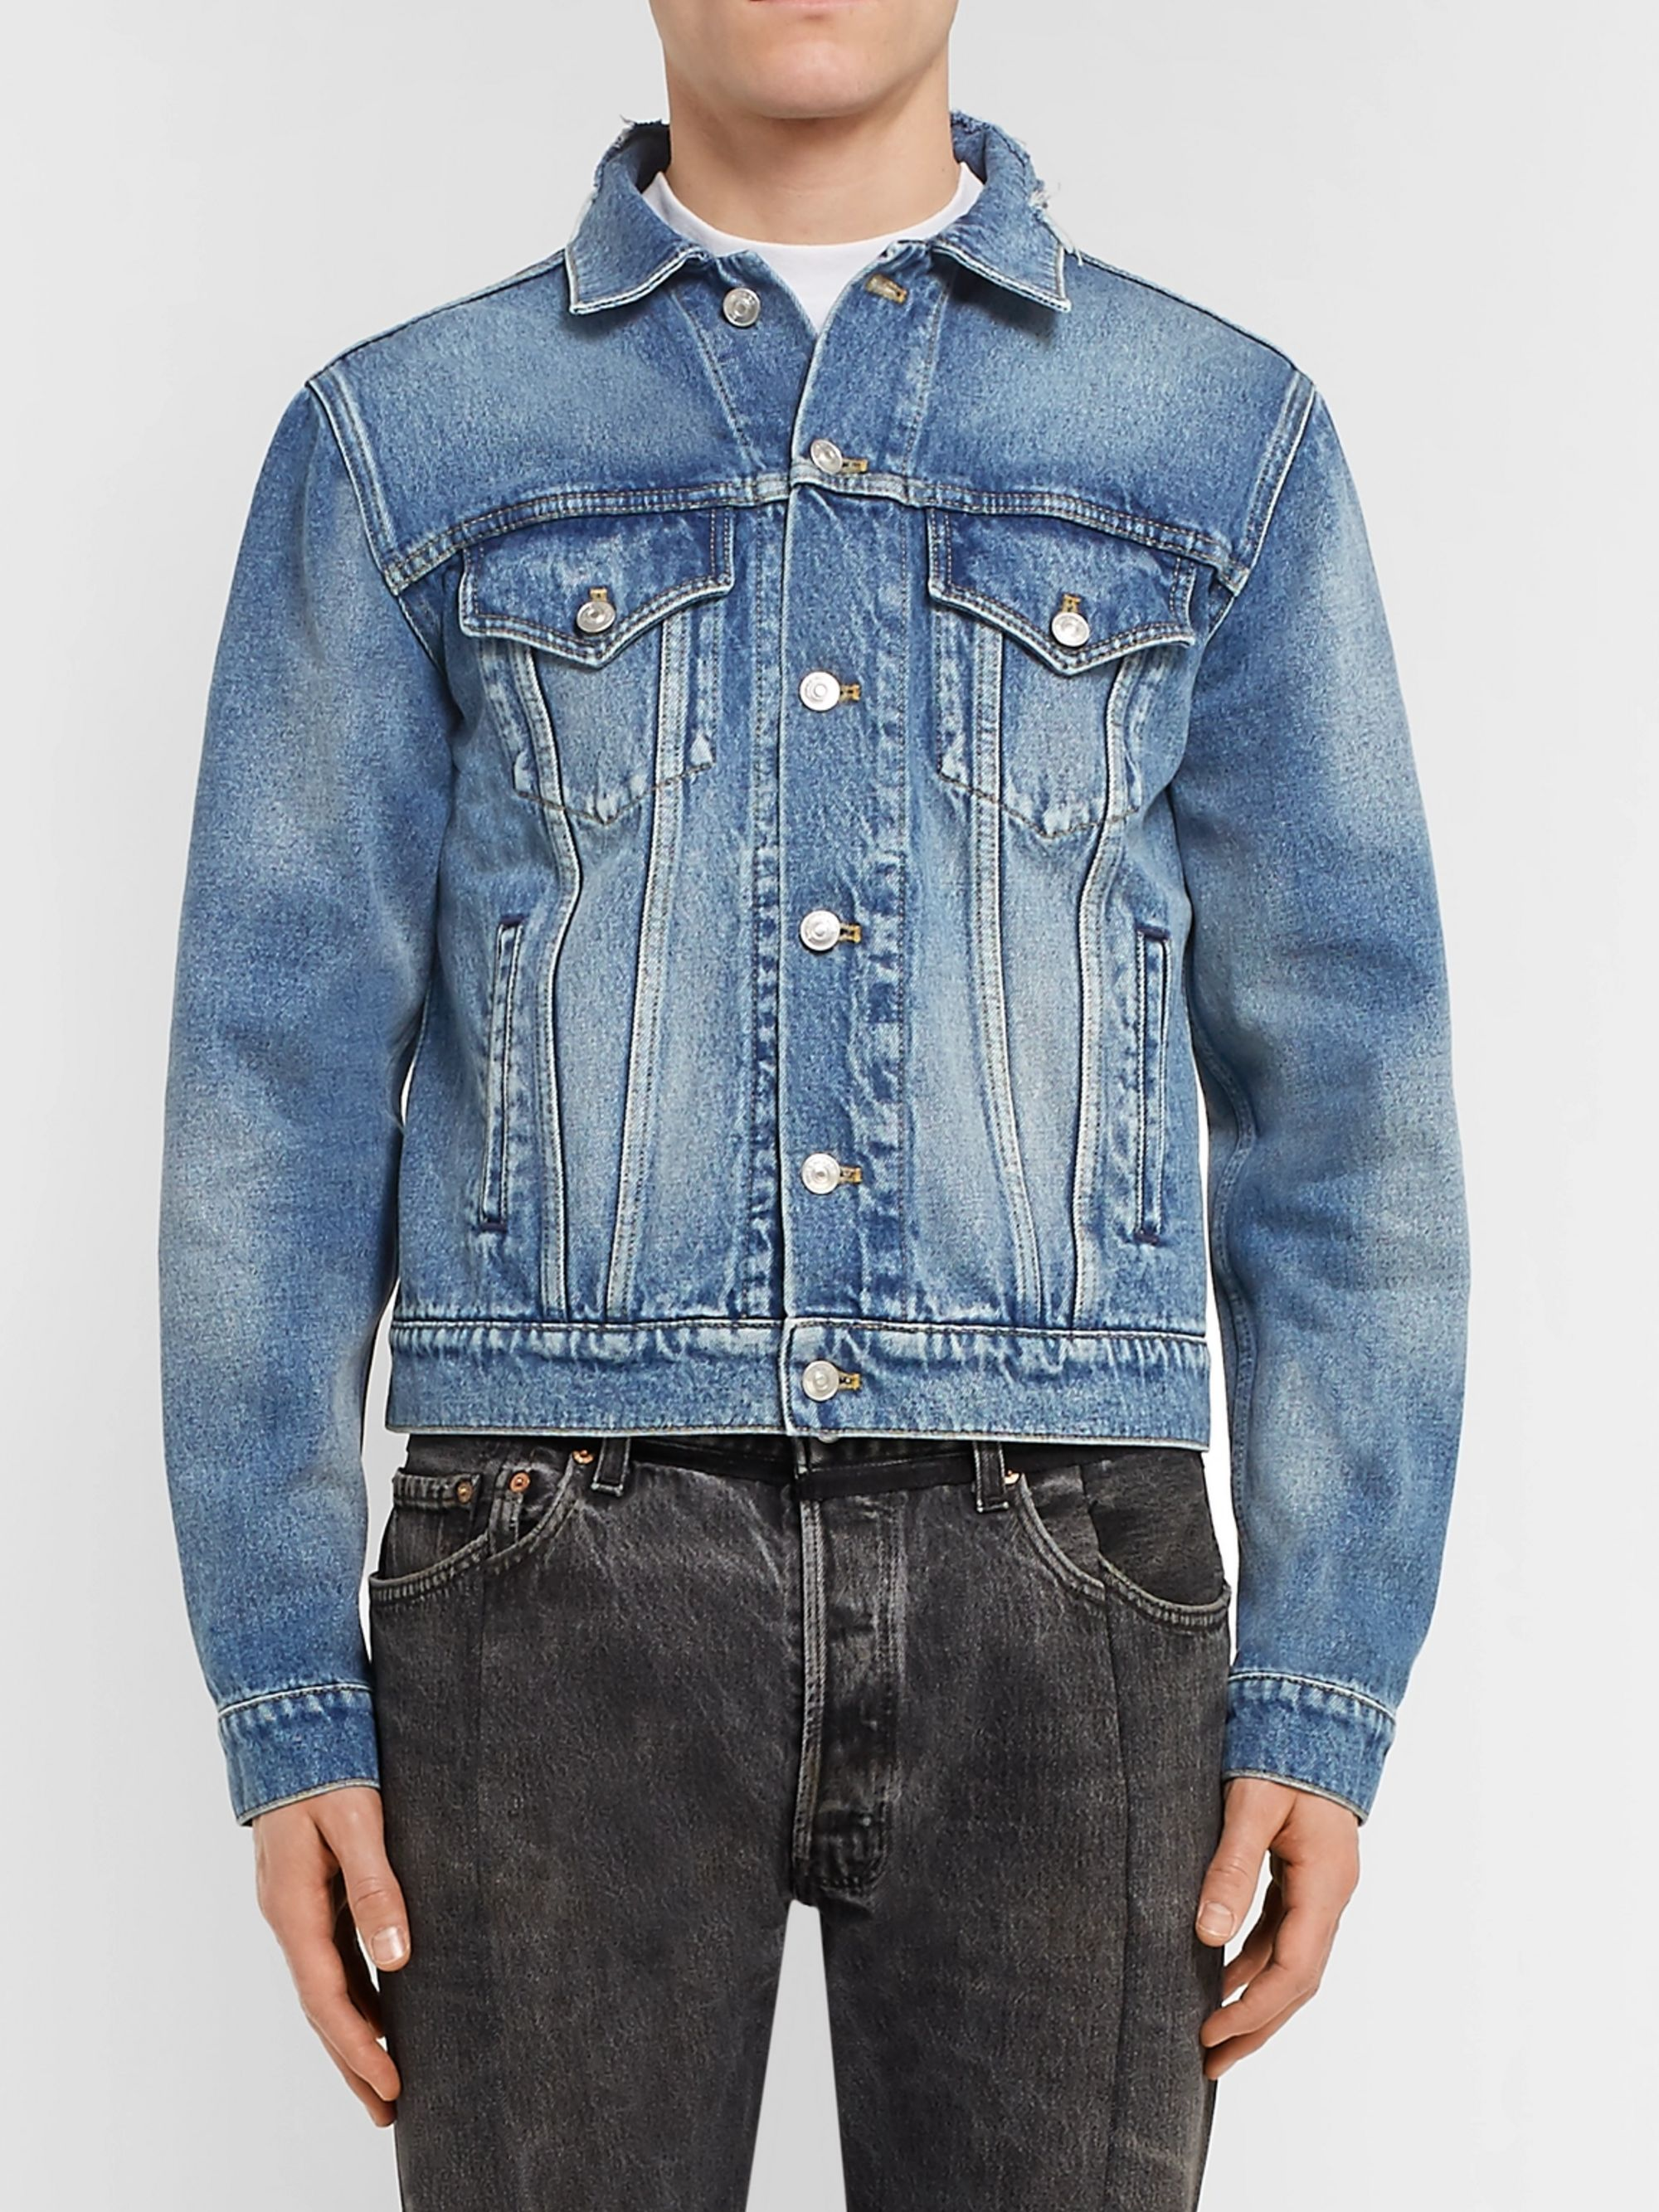 Balenciaga Cropped Embroidered Distressed Denim Jacket